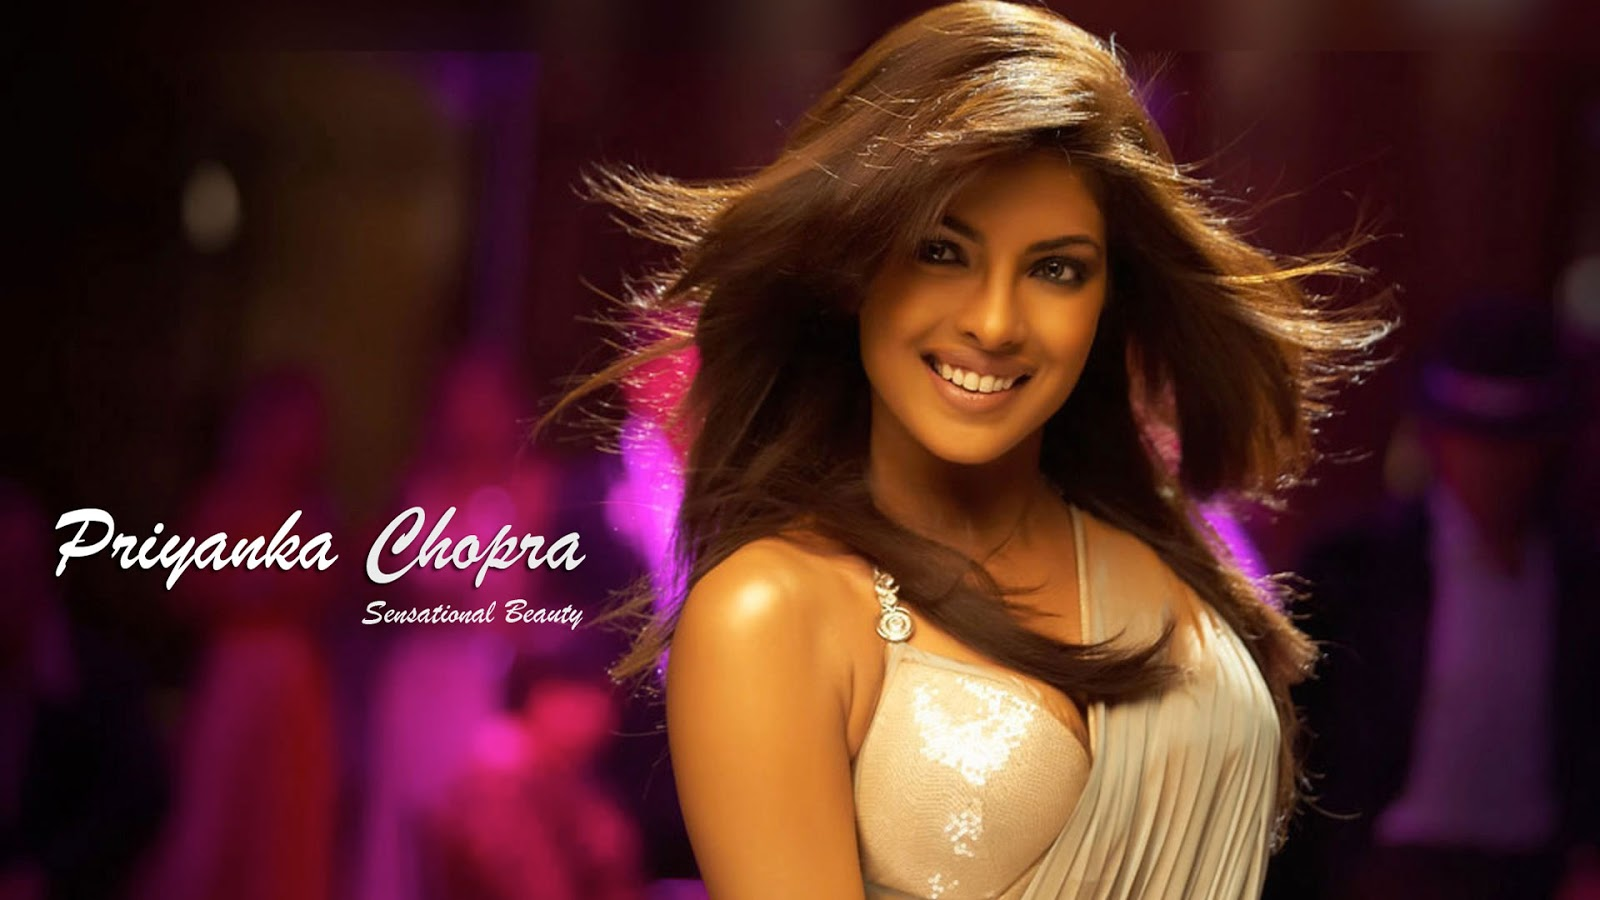 Desktop Wallpapers Bollywood: Latest Bollywood Actresses Wallpapers